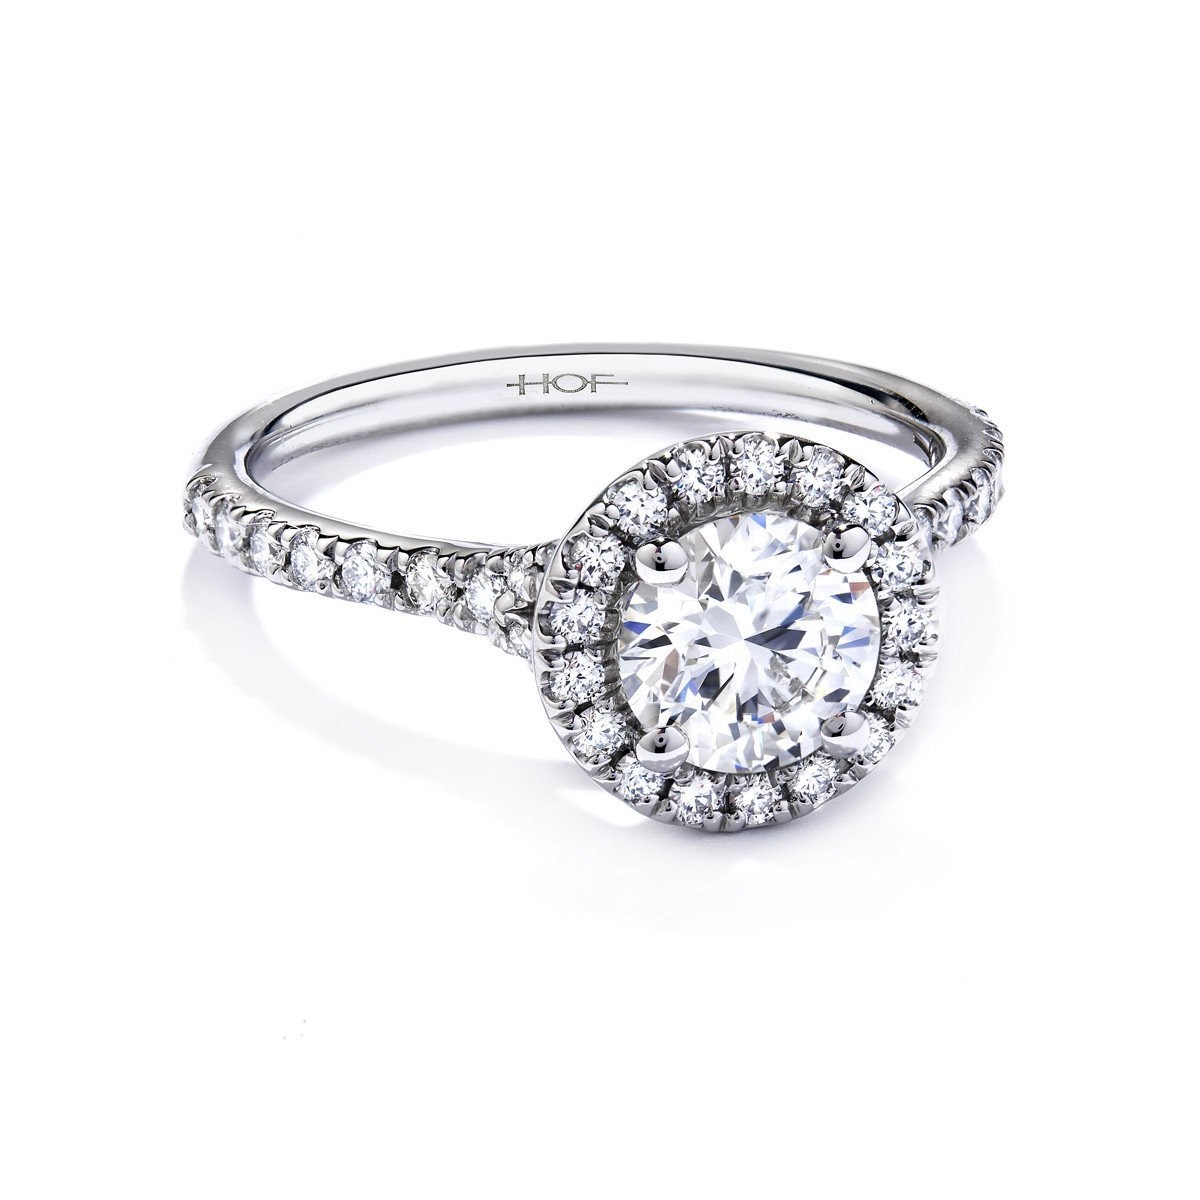 2.00 Carat Round Halo Simulated Diamond Engagement rings for women in 18k Gold Over Solid 925 Silver